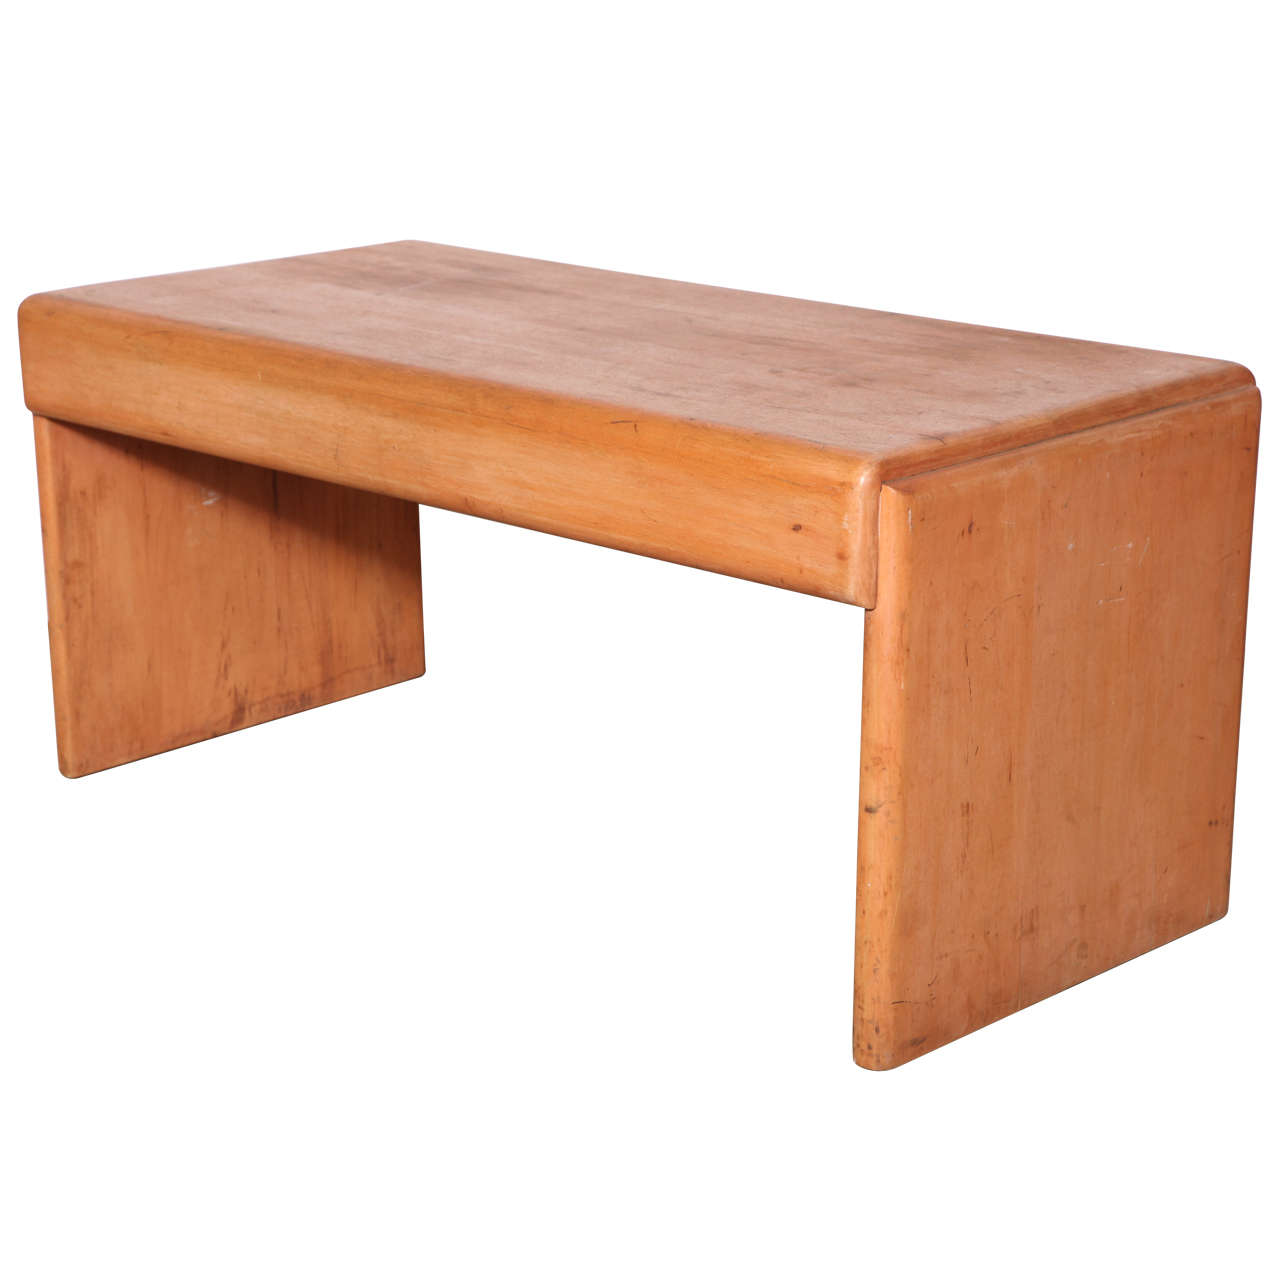 Rare russel wright american modern maple bench at 1stdibs rare russel wright american modern maple sciox Image collections